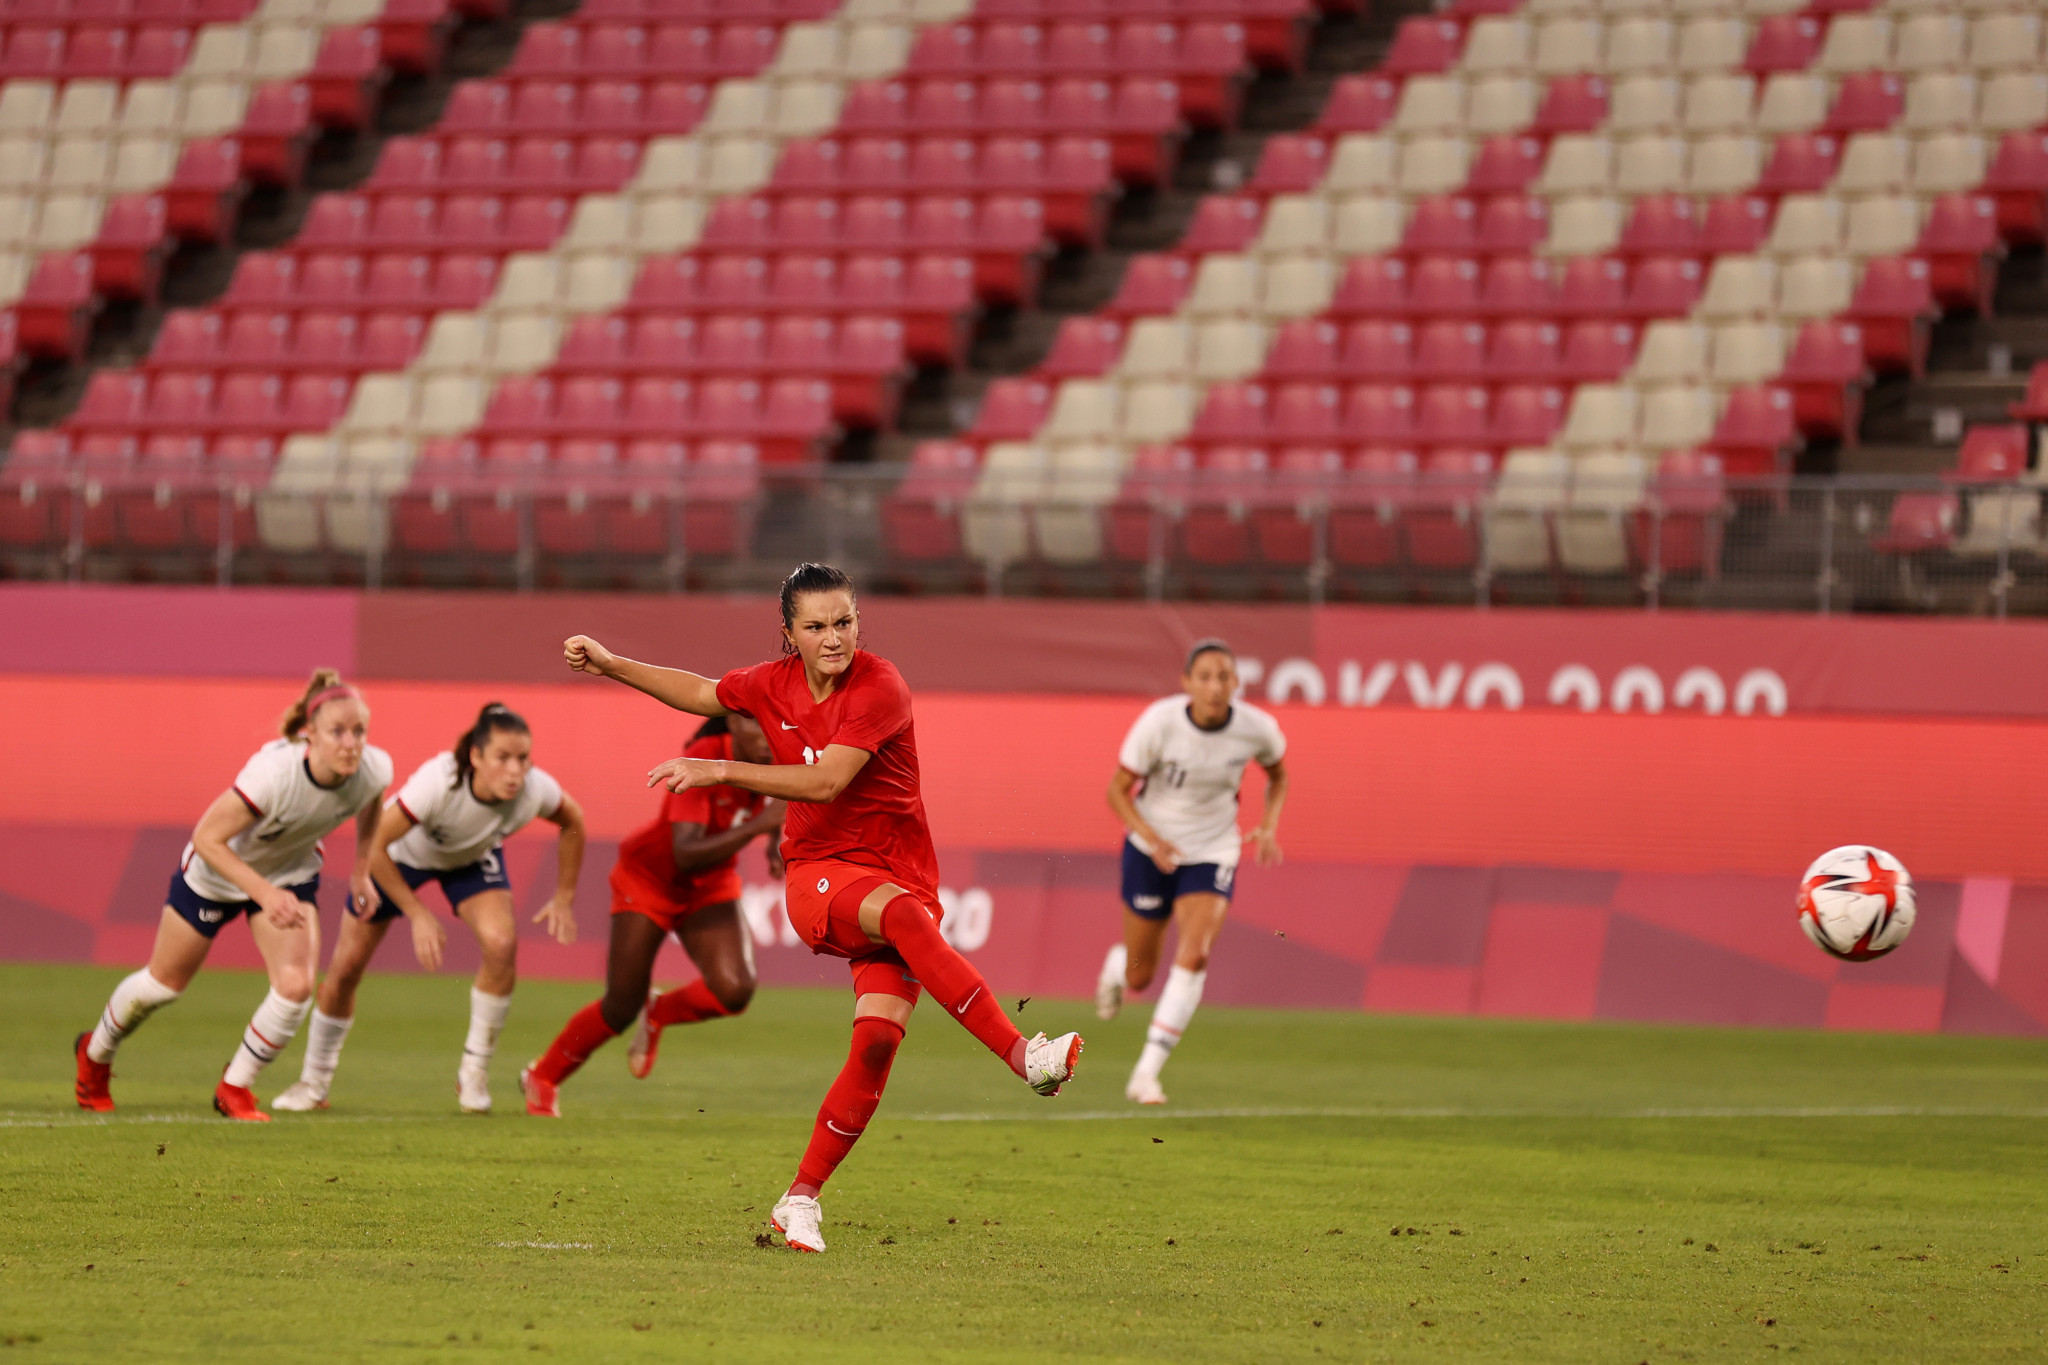 One American team no longer able to win gold is the women's football side, after Jessie Fleming's penalty gave Canada a 1-0 semi-final victory ©Getty Images